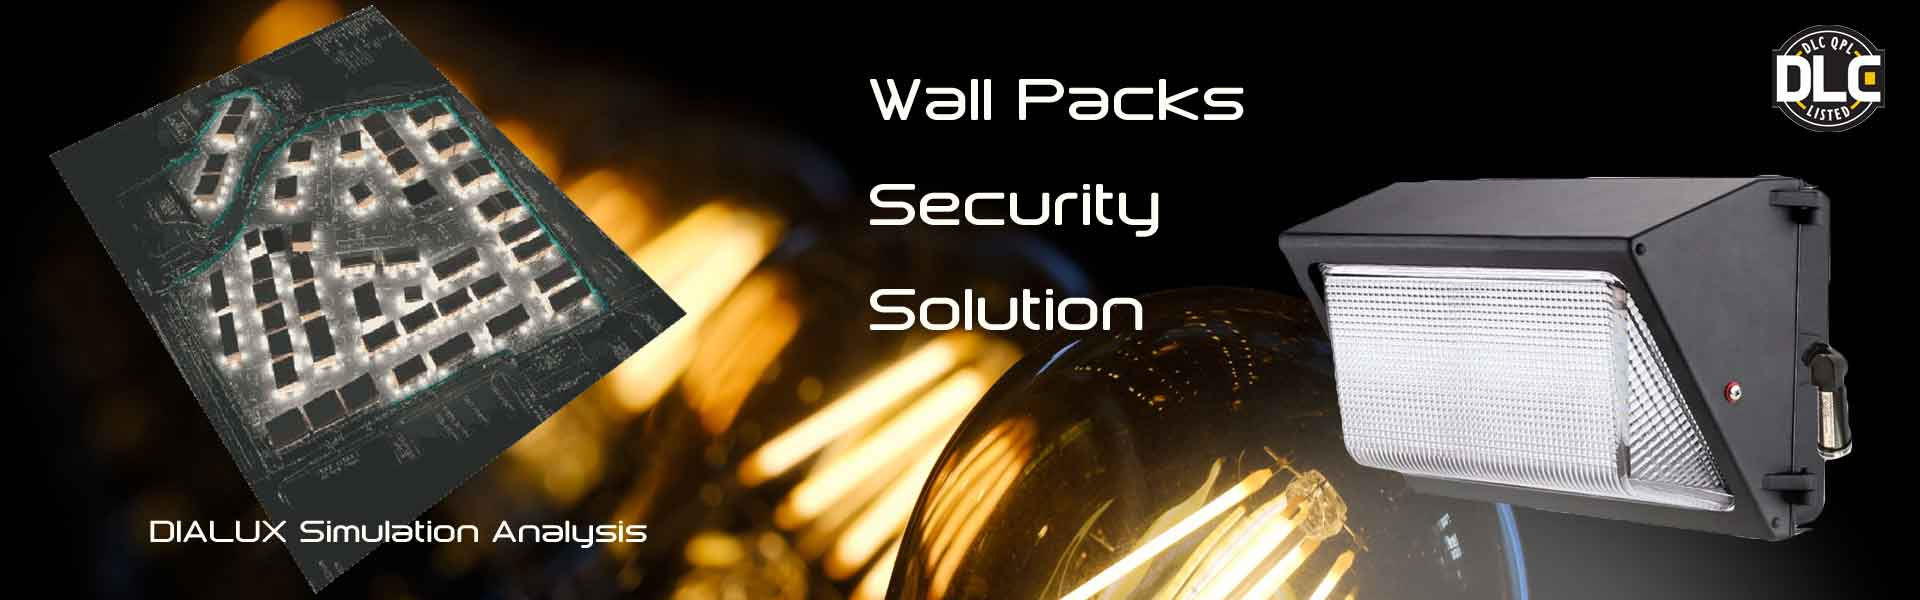 DLC led wall pack light for security lighting